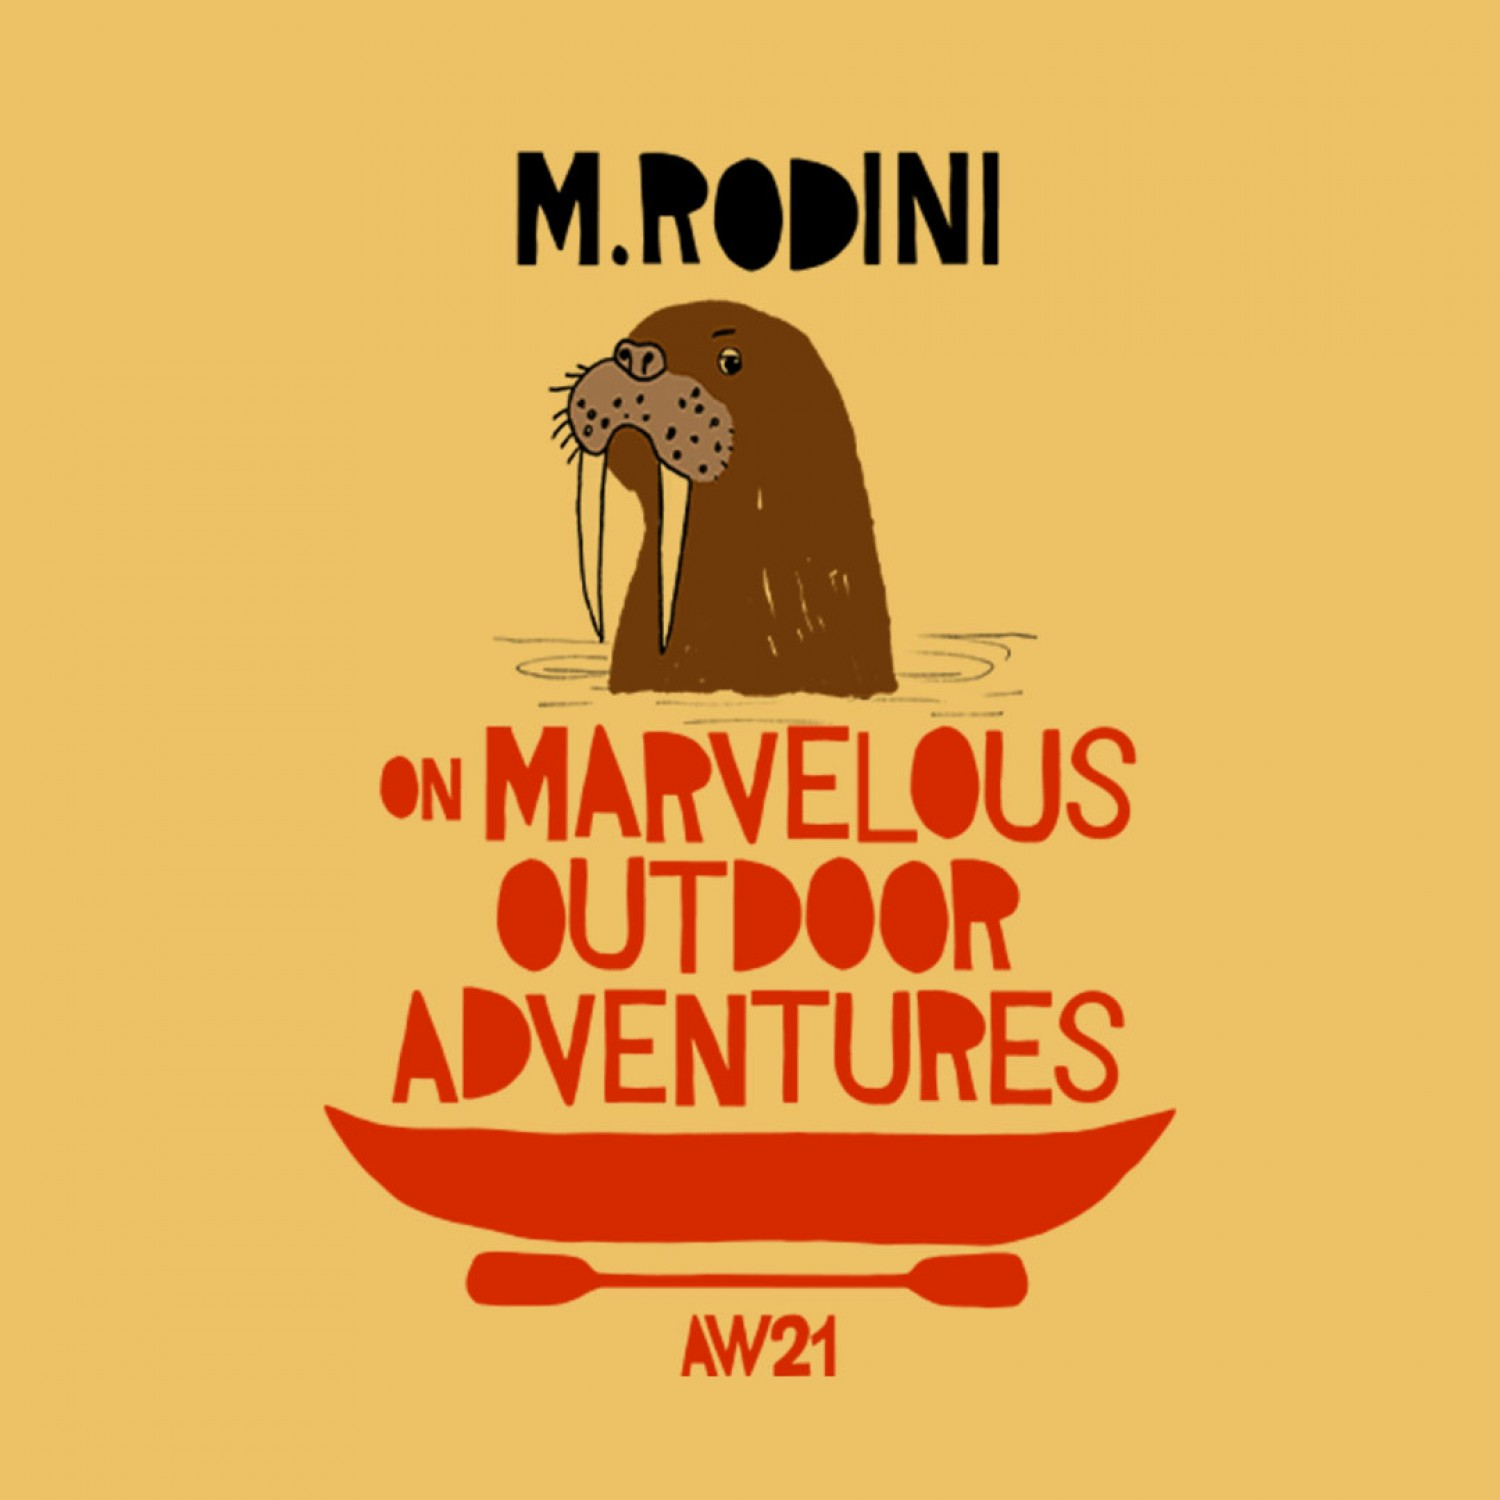 AW21 'On Marvelous Outdoor Adventures'